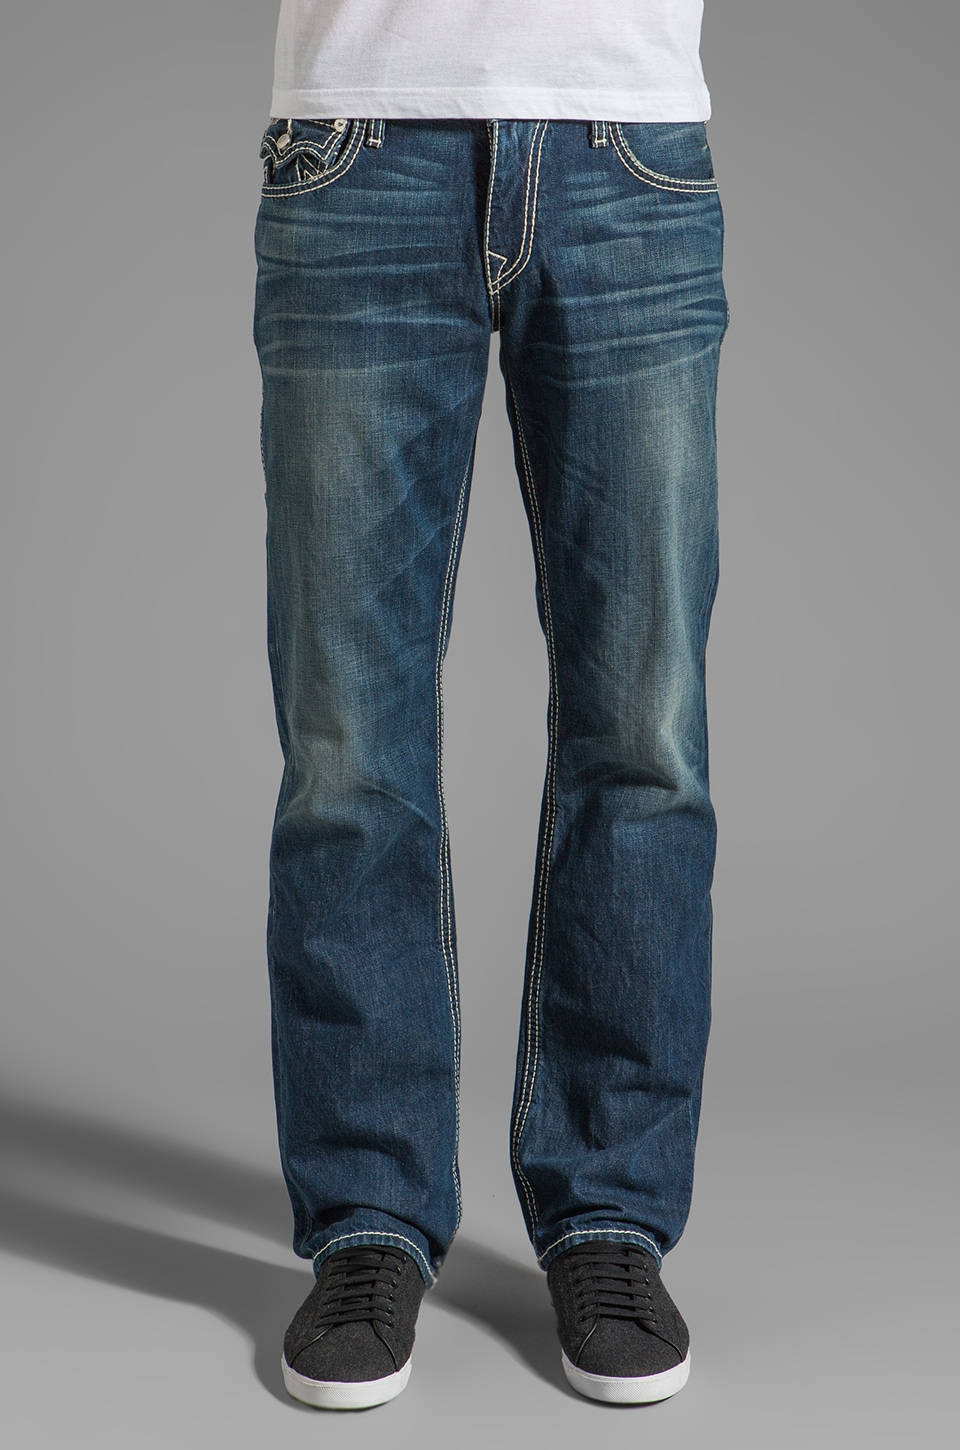 True Religion Ricky General Lee Straight Leg in Monarch